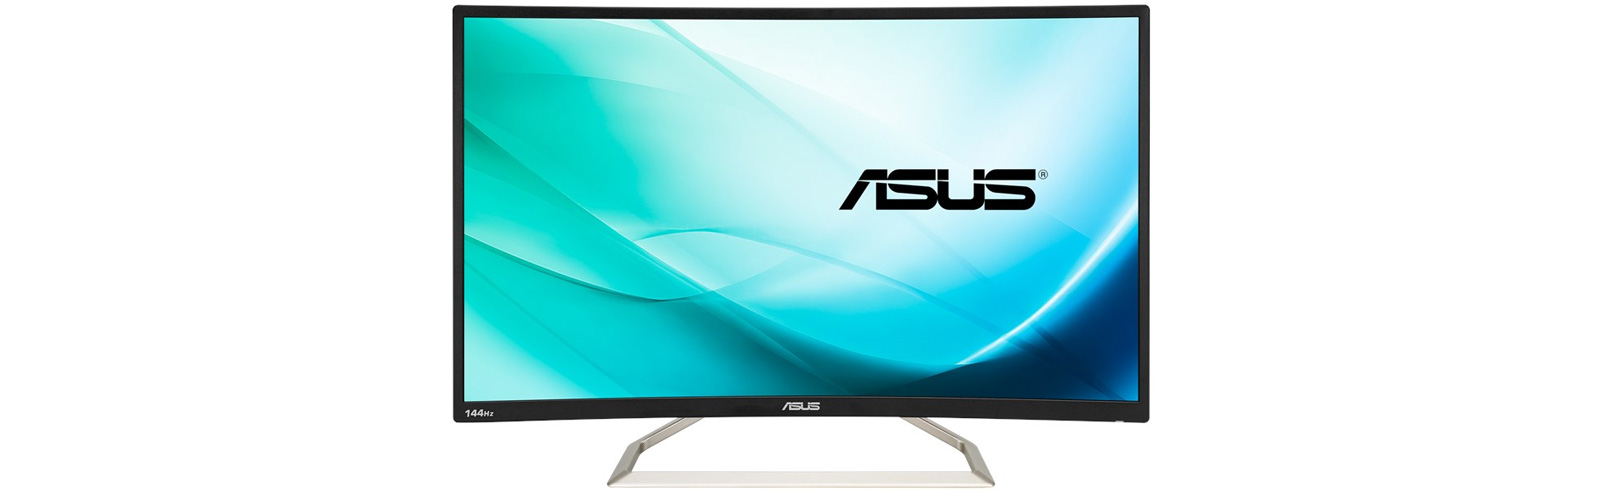 "Asus VA326HR - a new curved gaming monitor with a 31.5"" FHD display and 144Hz refresh rate"